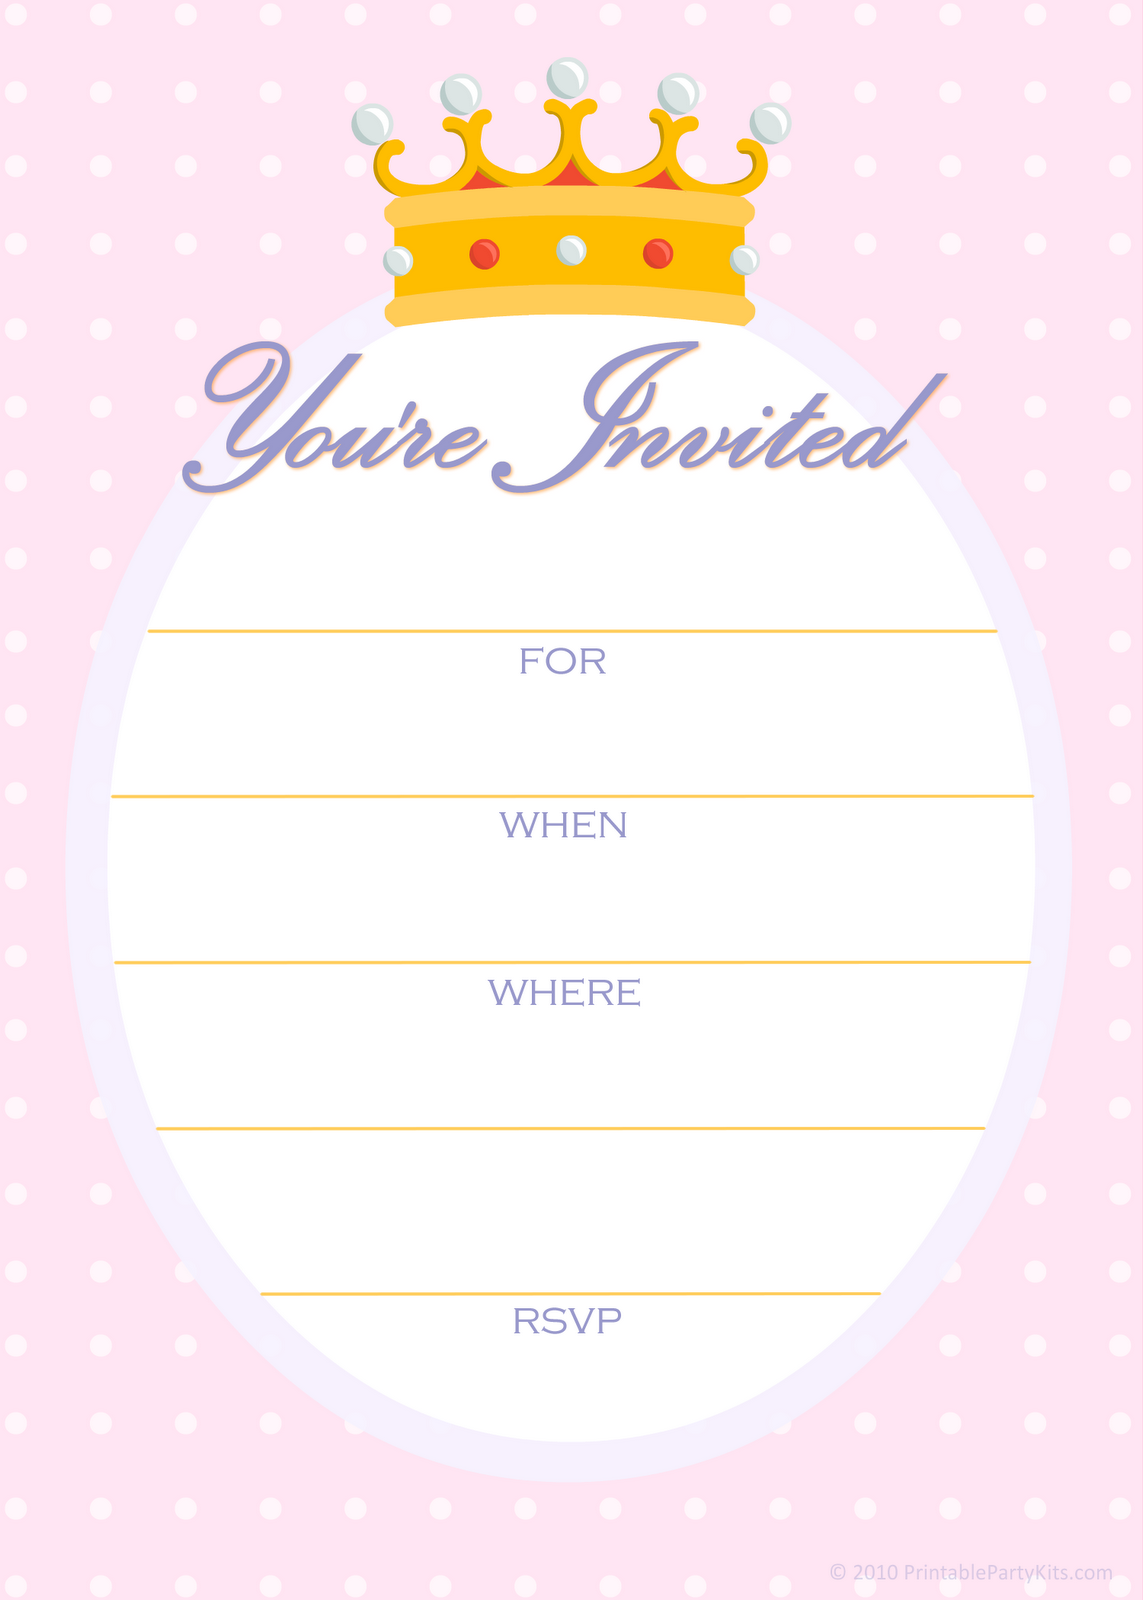 Charming Free Printable Party Invitations: Free Invitations For A Princess Birthday  Party And Birthday Party Card Template